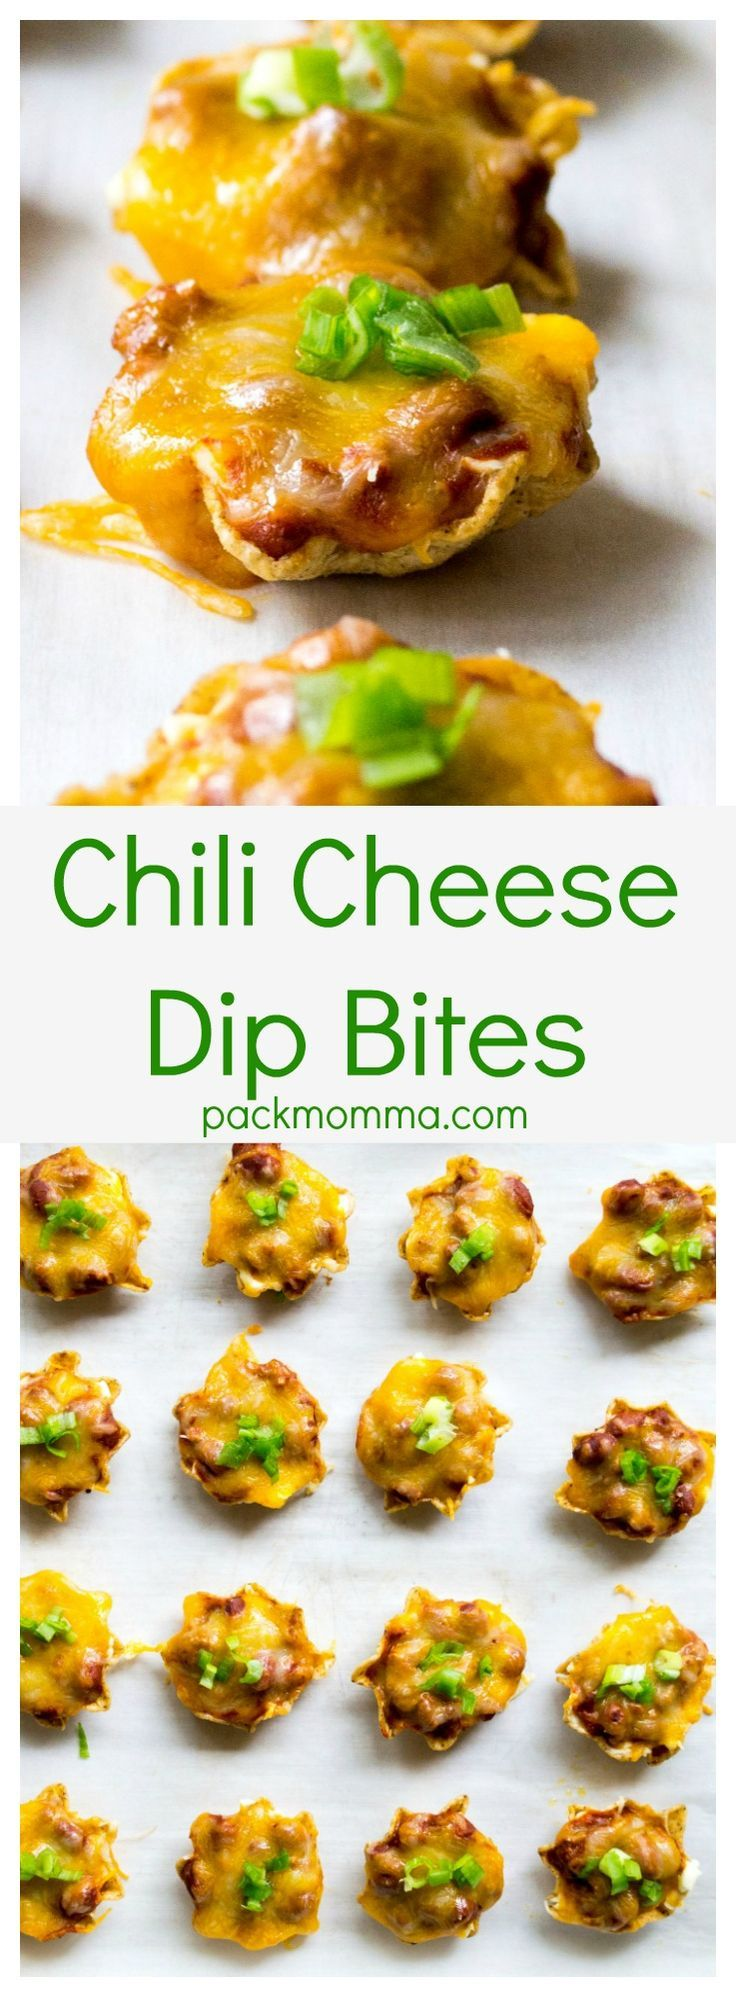 Chili Cheese Dip Bites | Chili Cheese Dip Bites combine spicy chili, melted cheddar cheese and cream cheese and deliver it in individual little nacho chips. Perfect for Game Day!